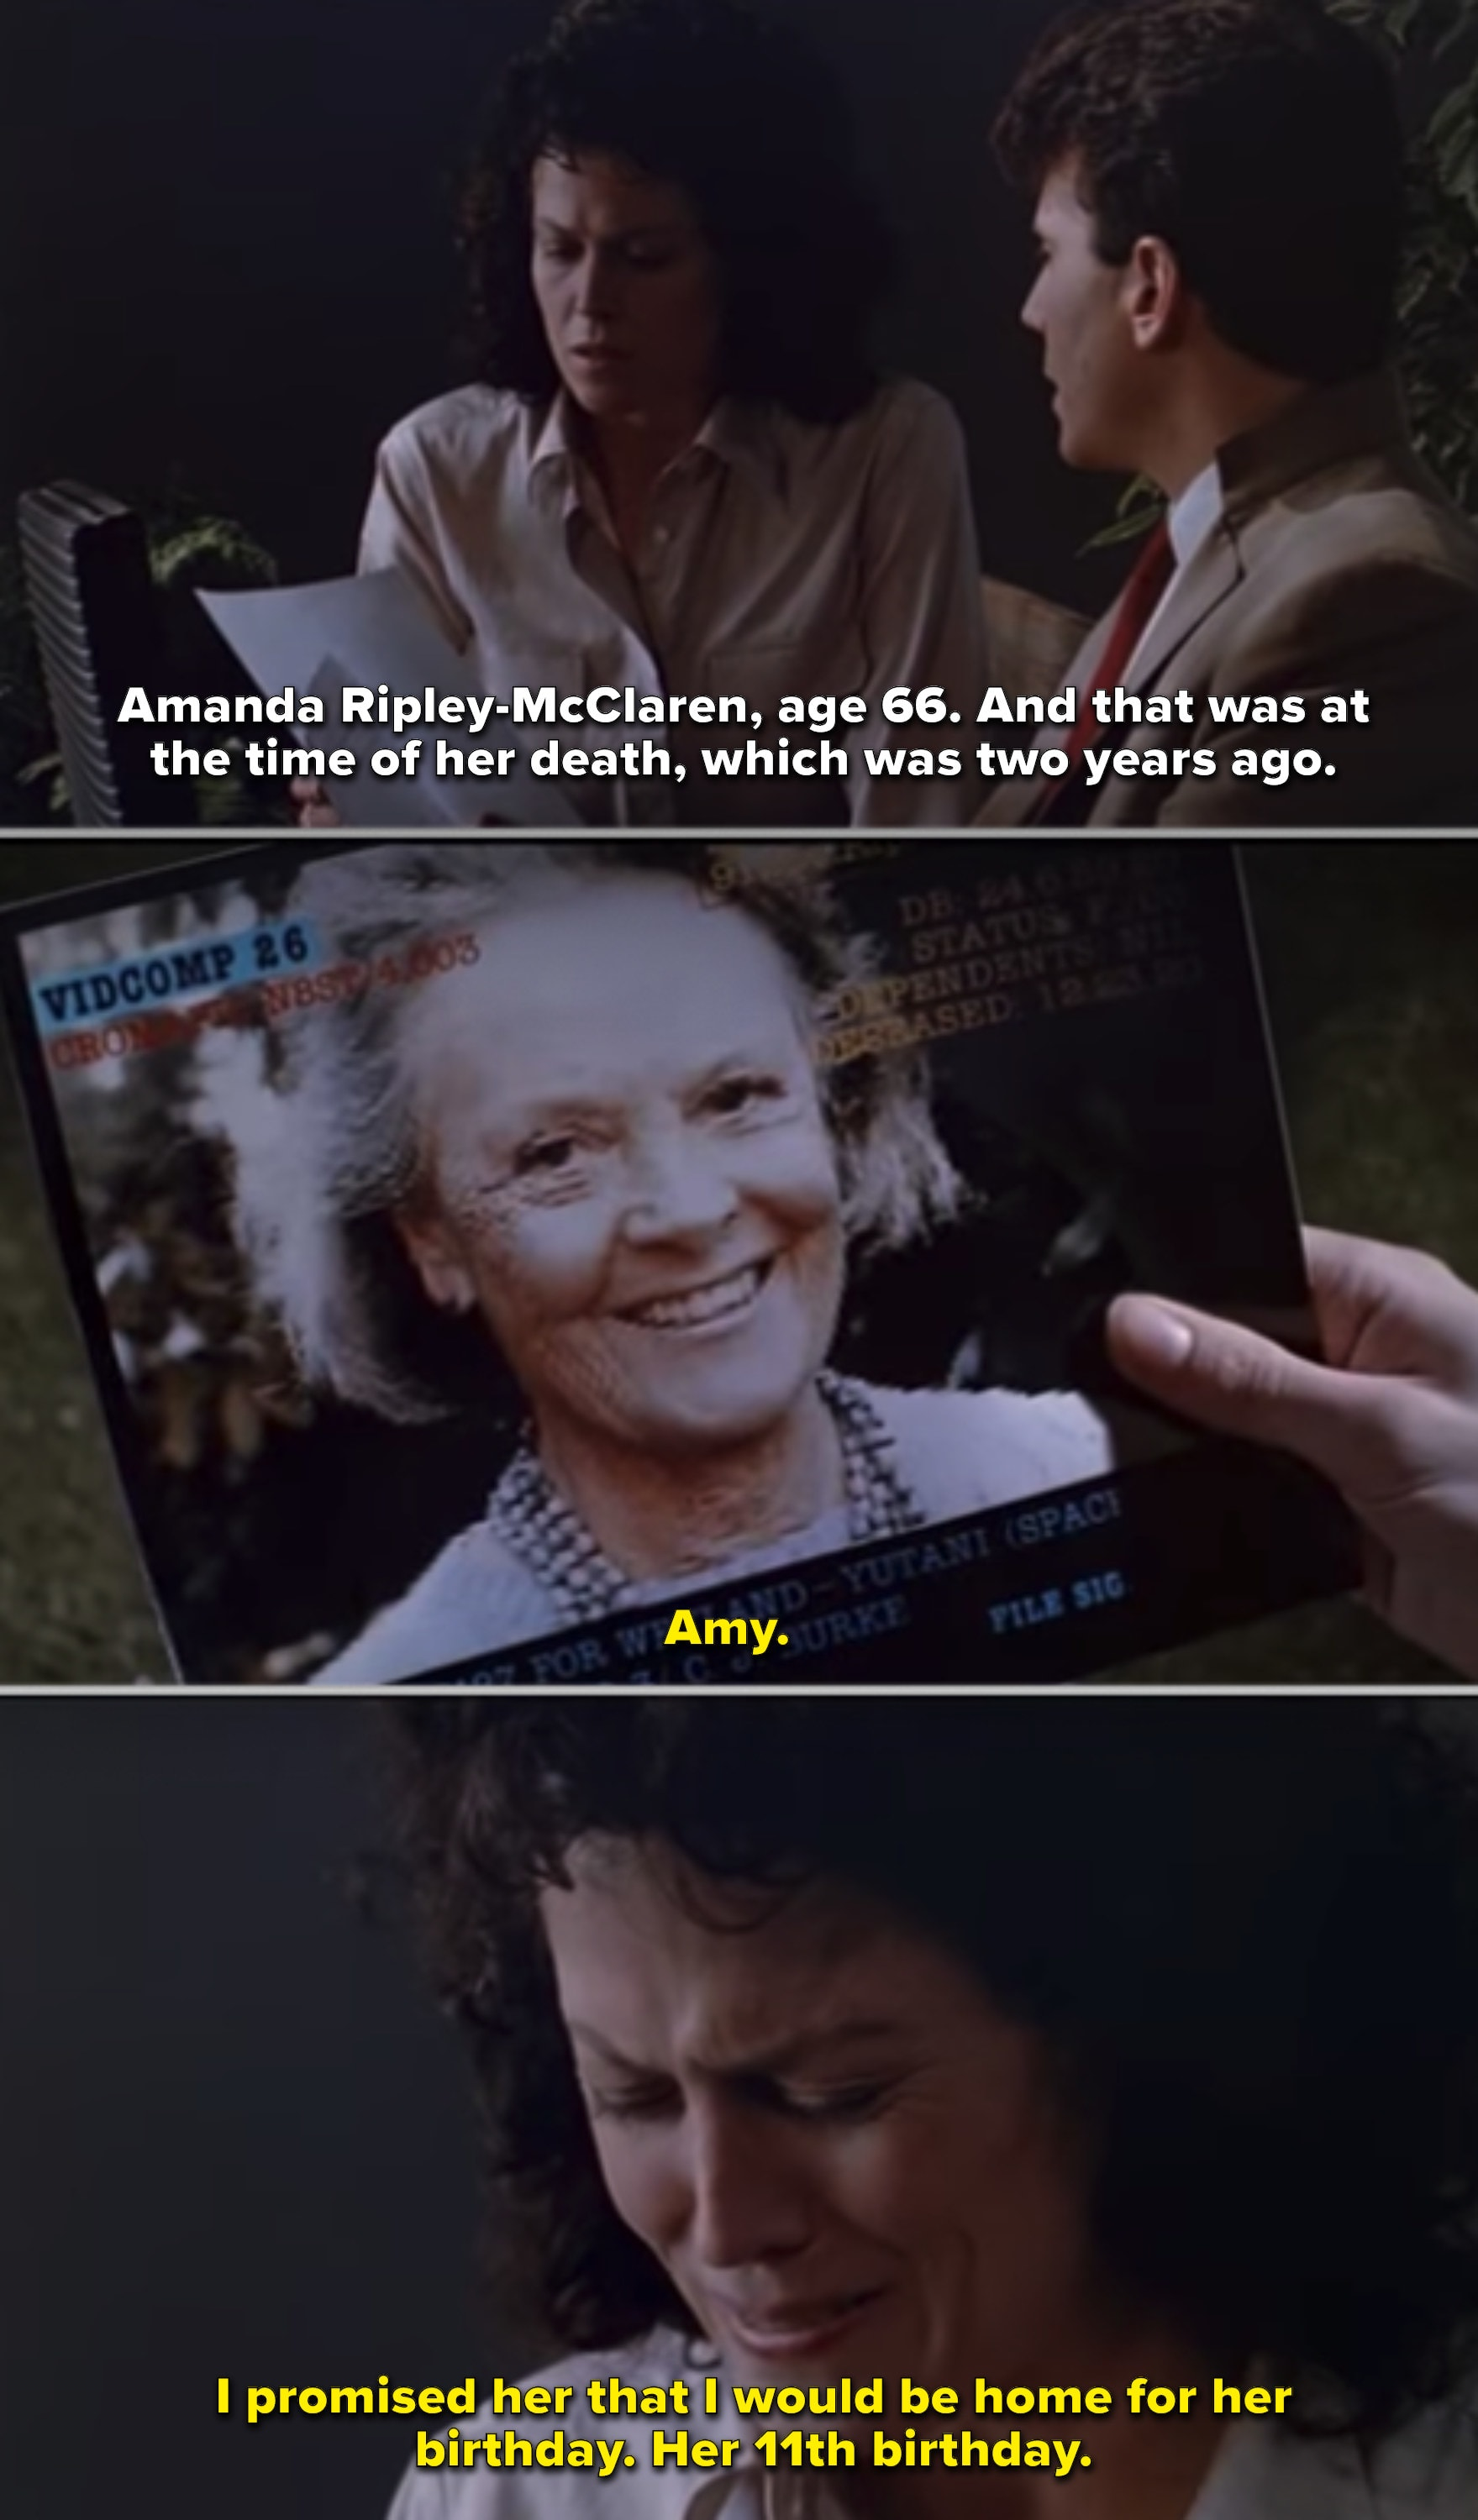 Ripley looking at a picture of her daughter as an old woman